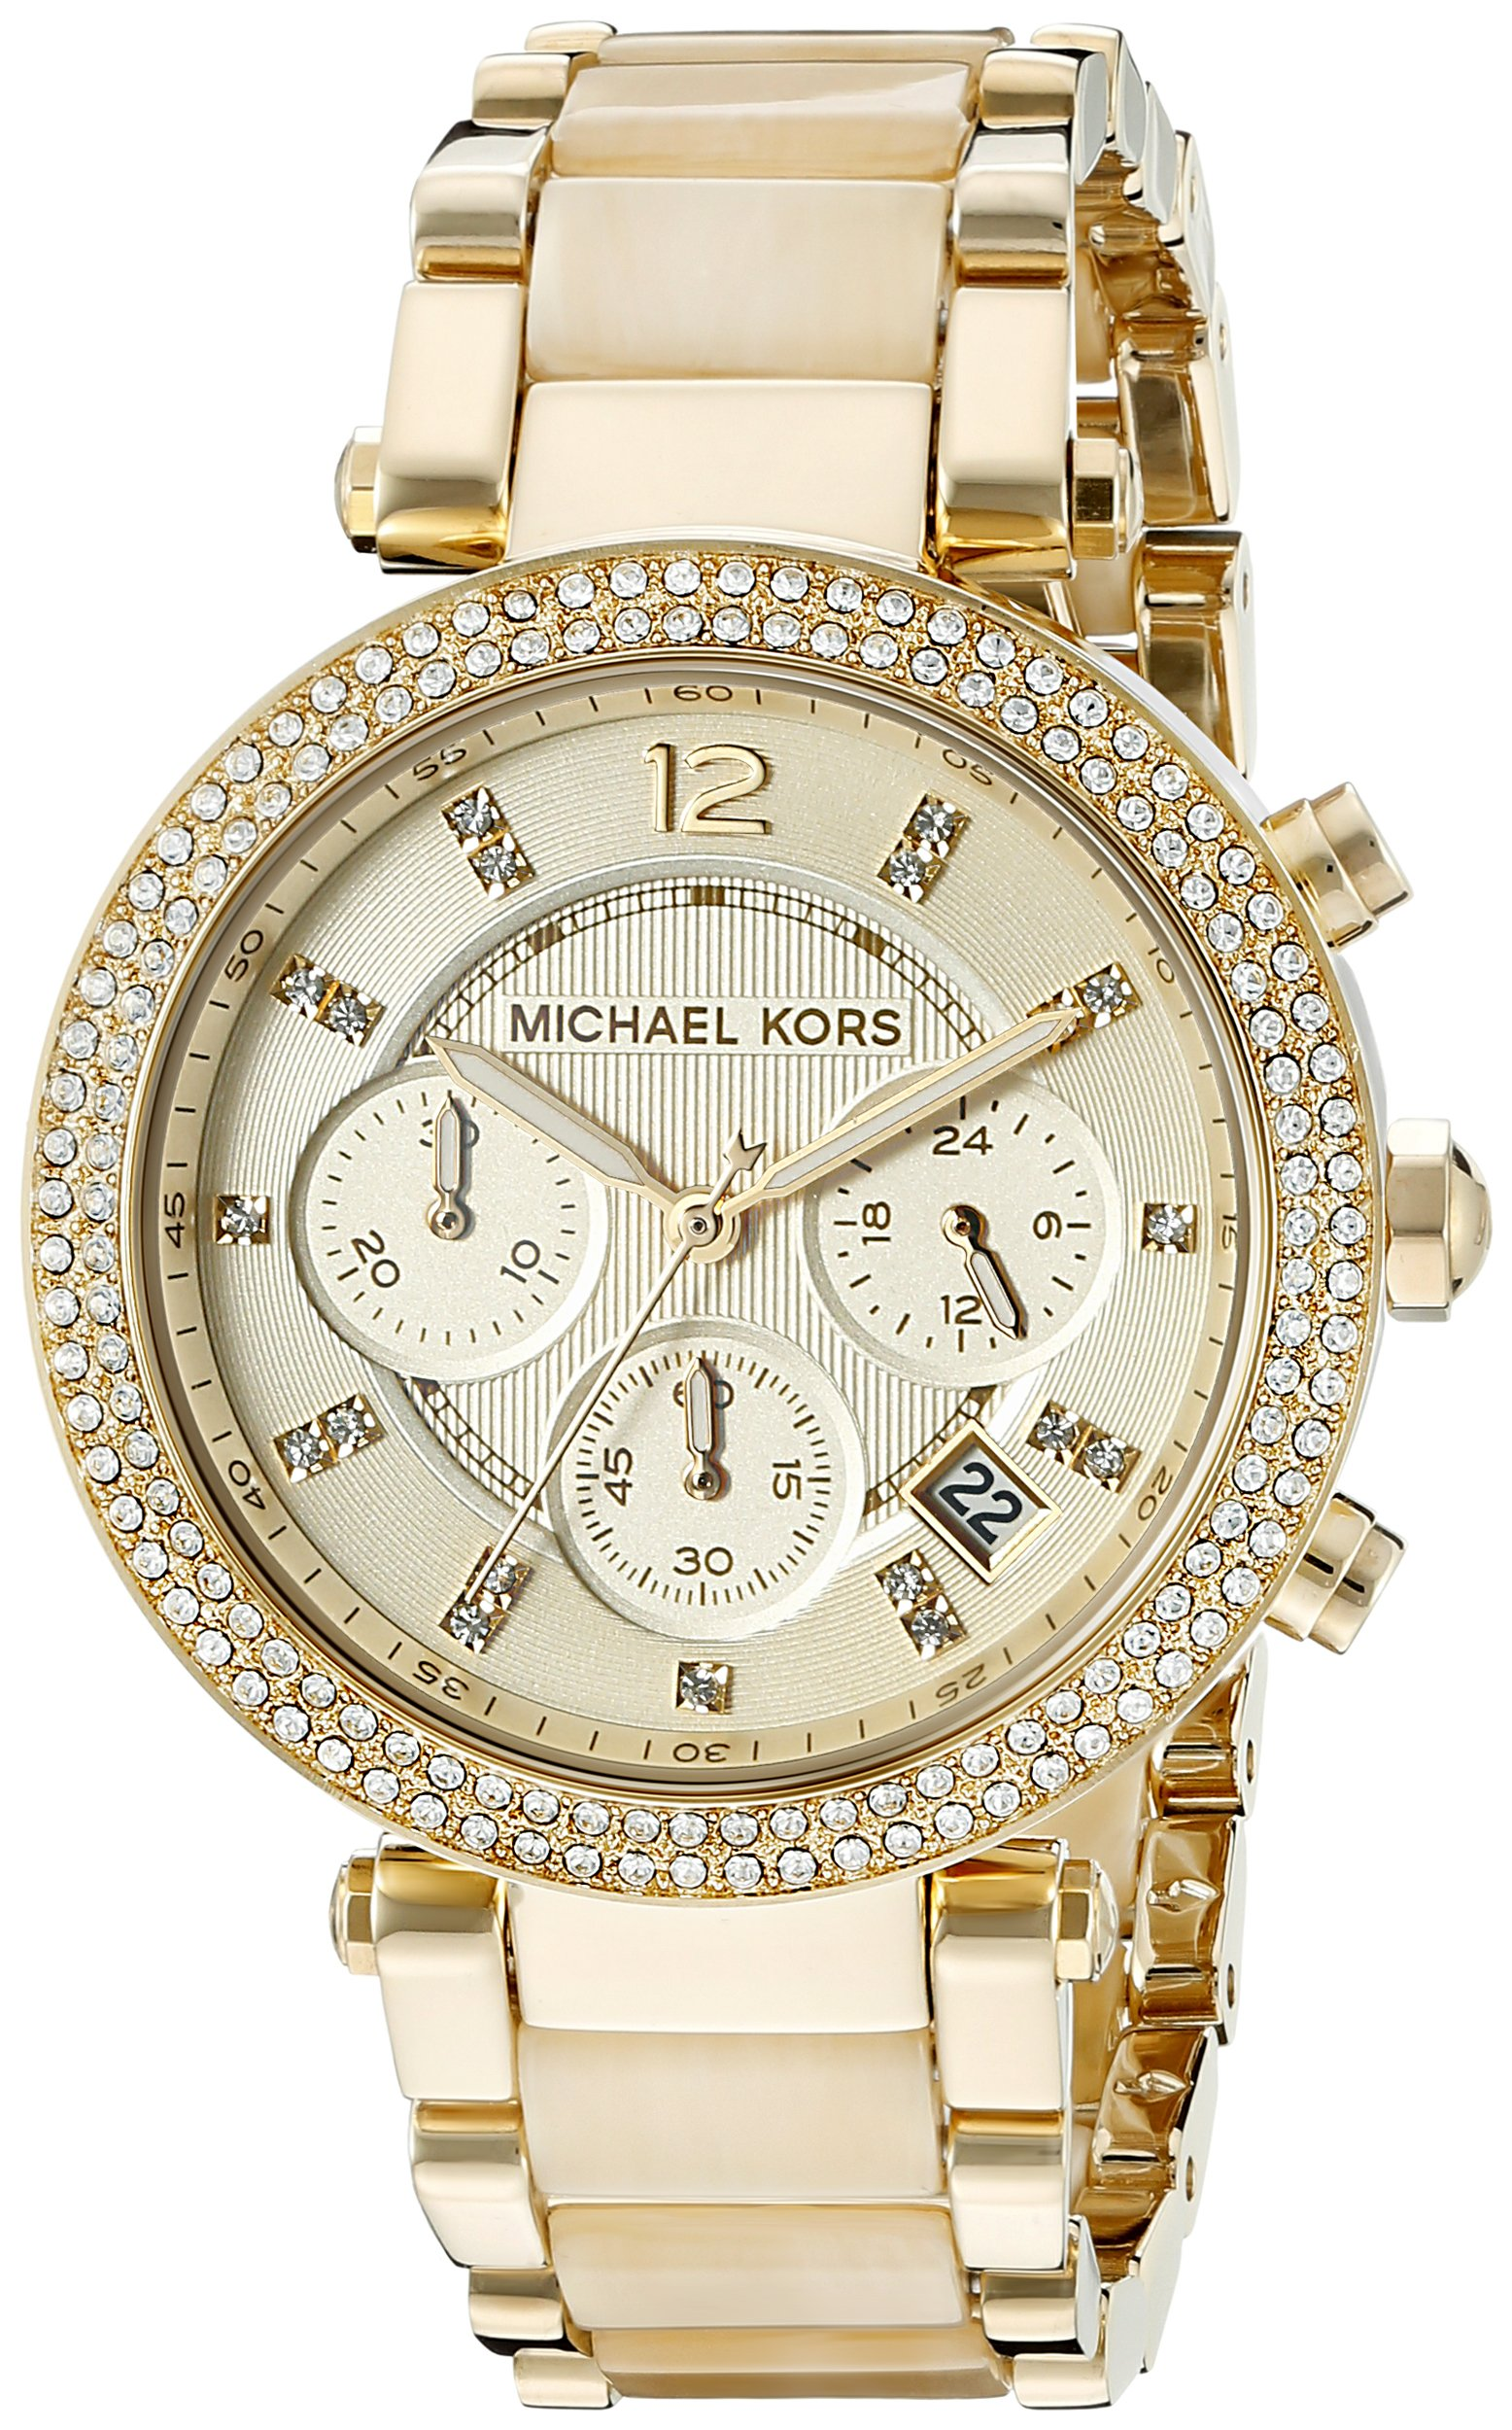 Michael Kors MK5632 Women's Parker Analog Display Chronograph Quartz Watch, Gold Stainless Steel and Horn Acetate Band, Round 39mm Case